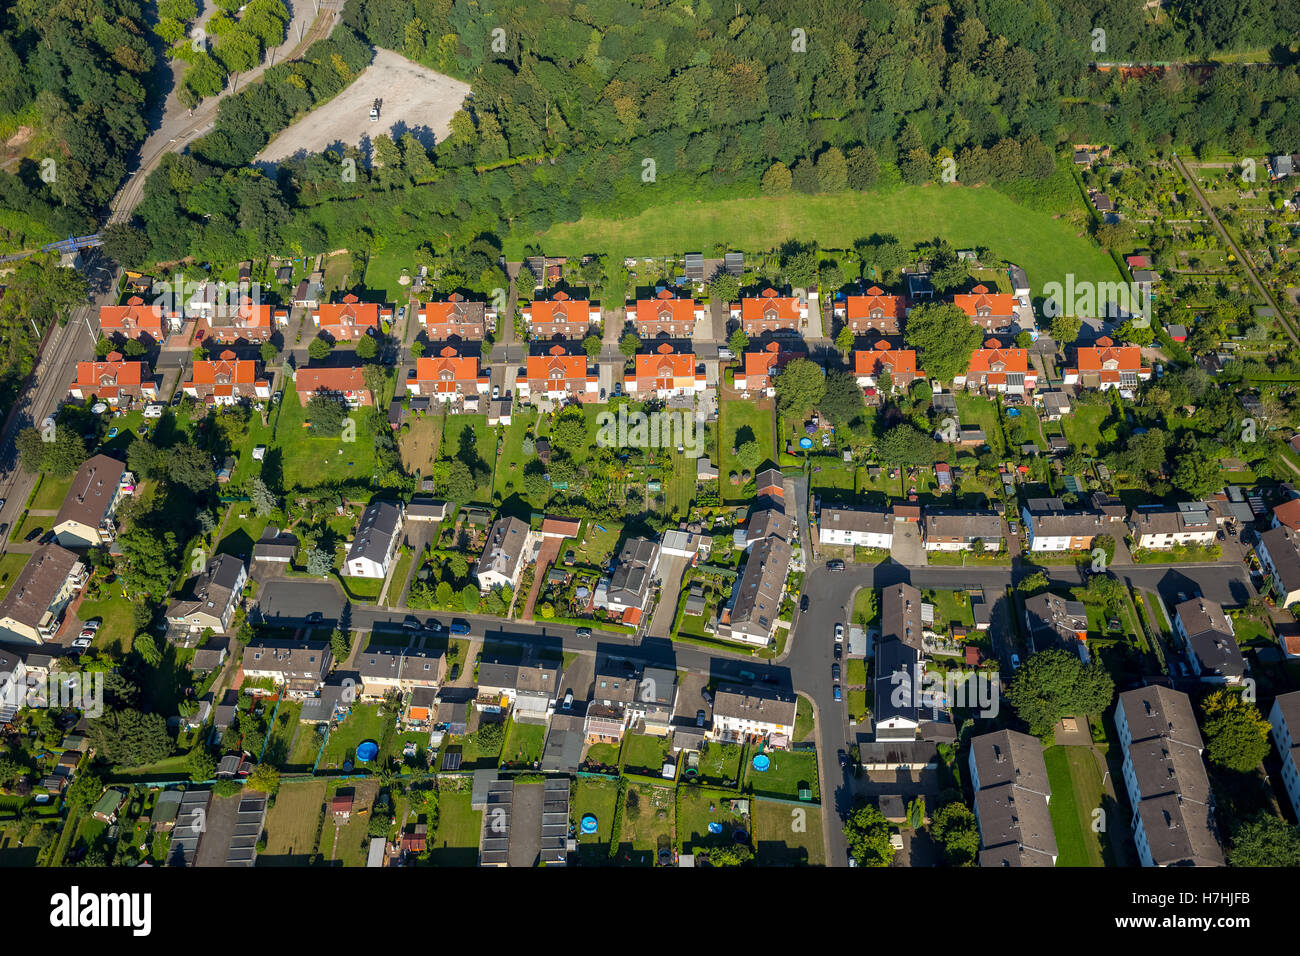 Aerial view, Essen-Katerberg Zollverein settlements with colony Hegemannshof, colony Ottekampshof and colony Zollverein - Stock Image